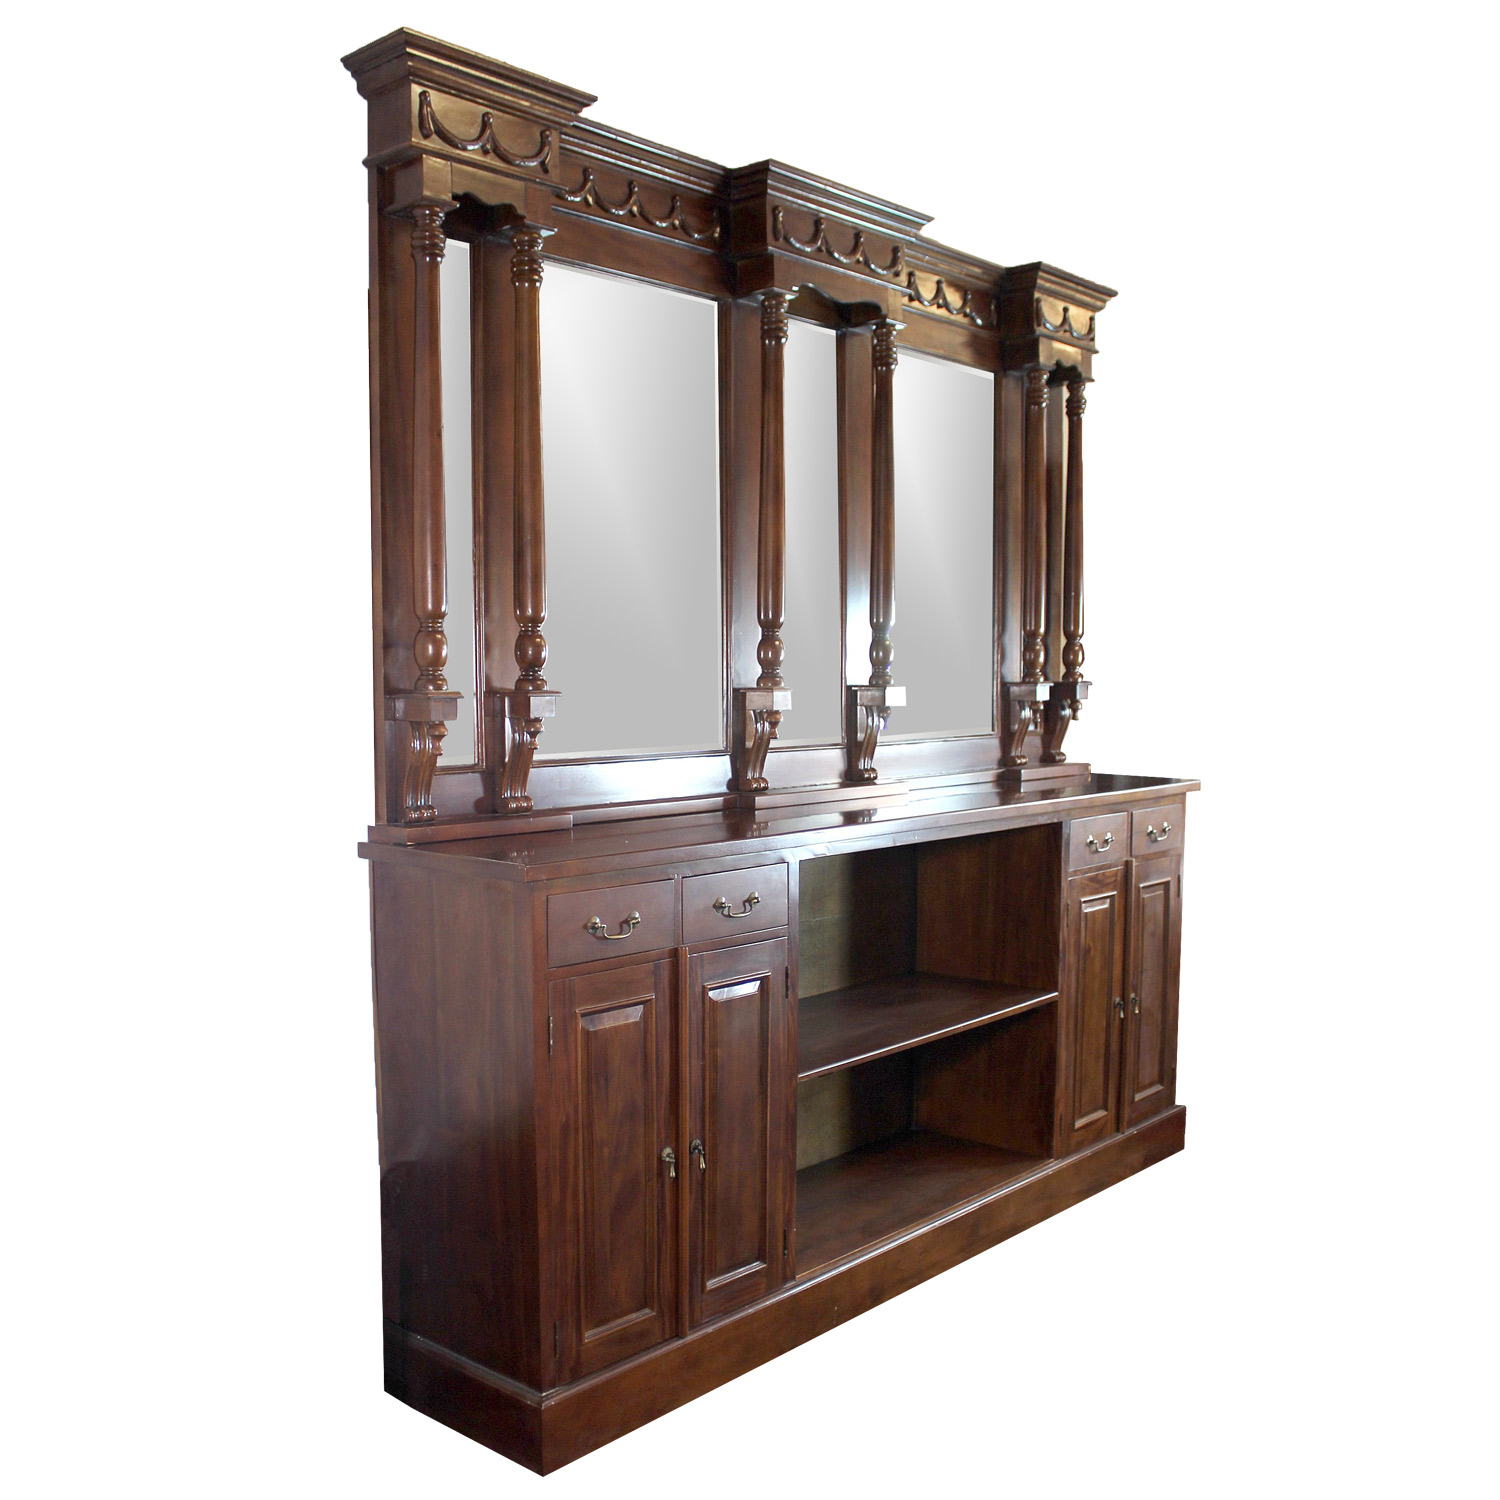 8 39 mahogany victorian back bar furniture antique replica sale home man cave the kings bay